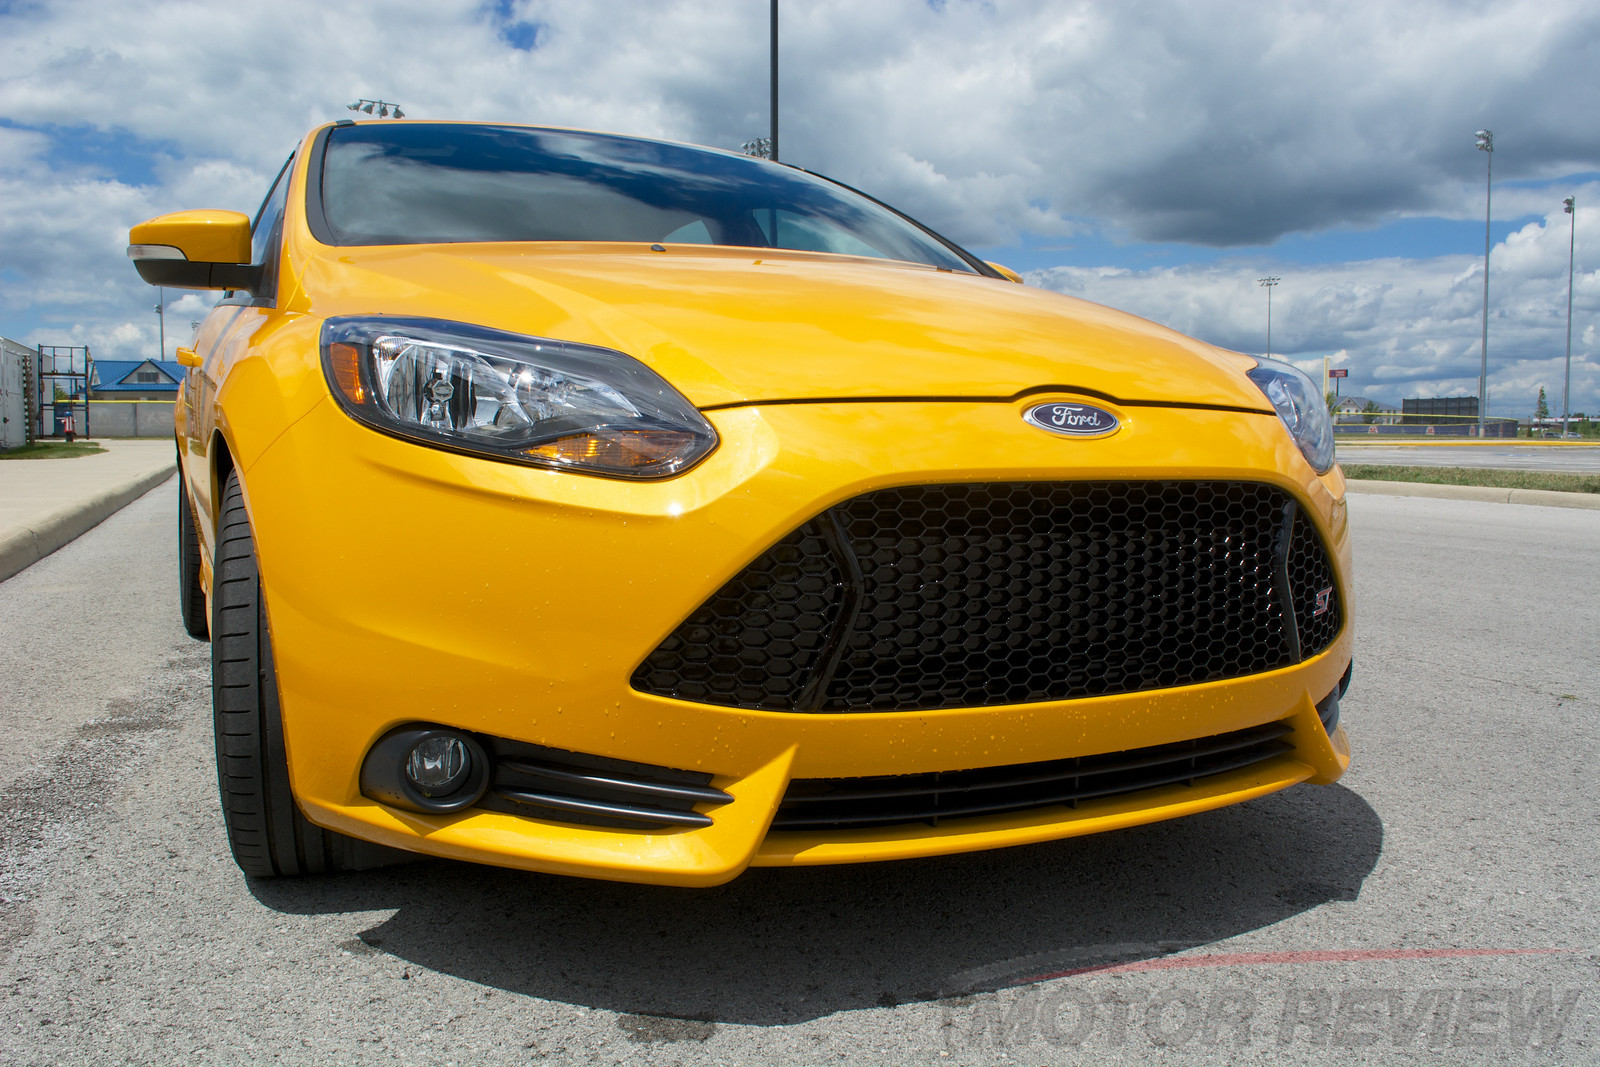 2014 ford focus st review 25 motor review. Cars Review. Best American Auto & Cars Review